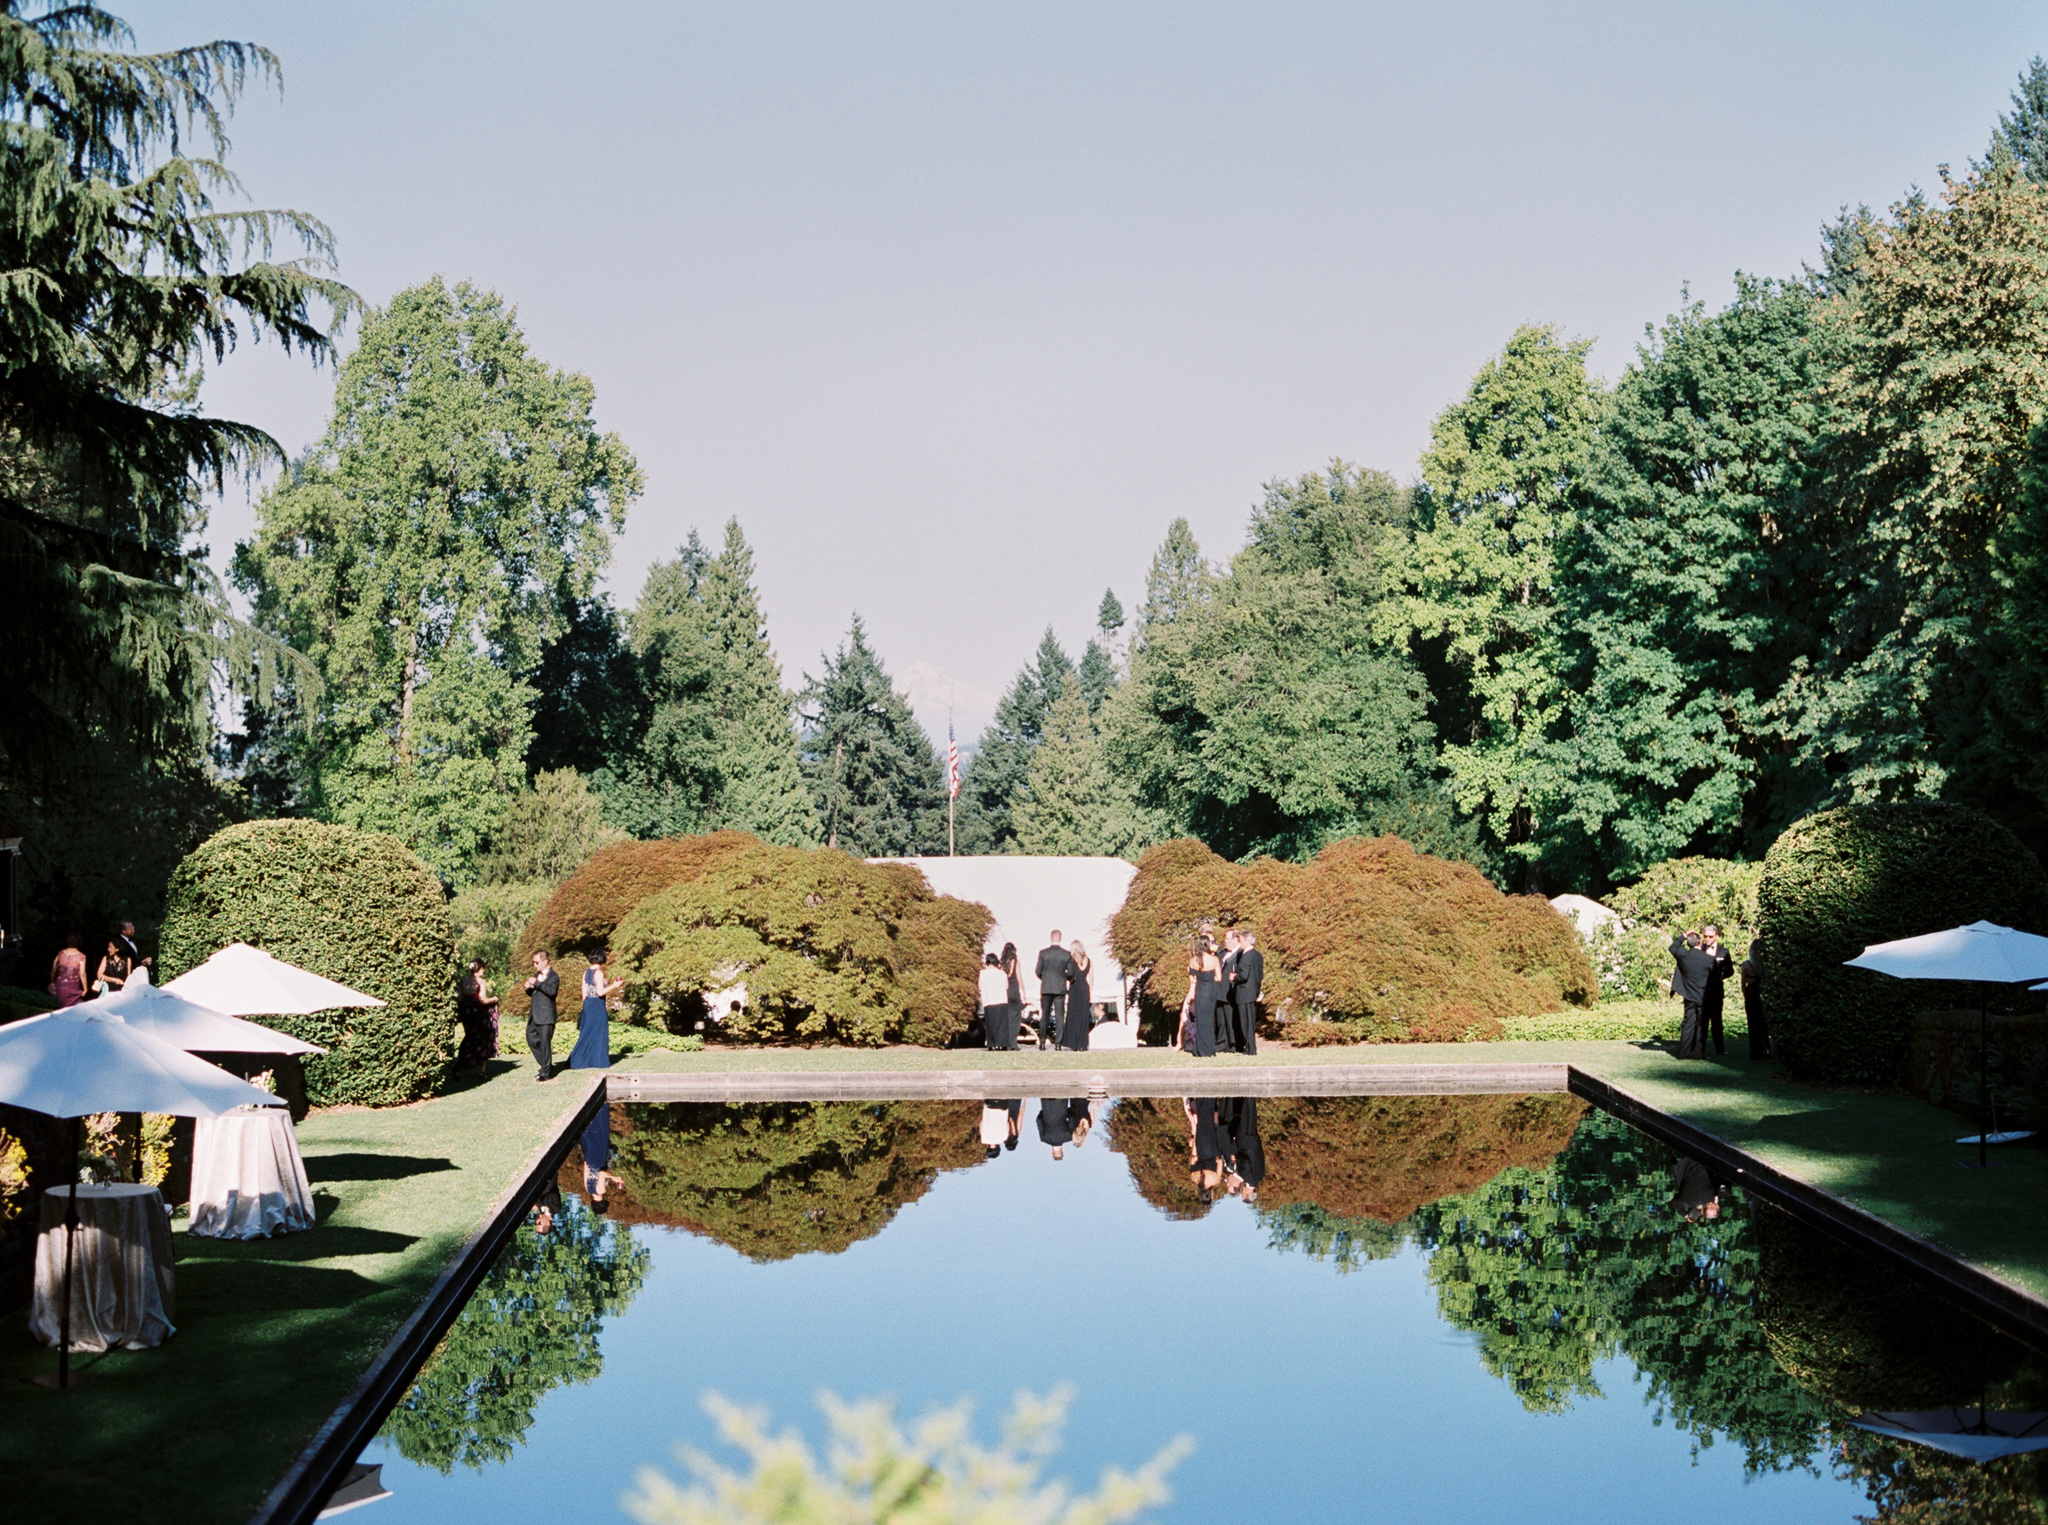 148OutliveCreative_Travel_Photographer_Videographer_Lewis&Clark_Oregon_Elegant_BlackTie_Destination_Wedding.jpg